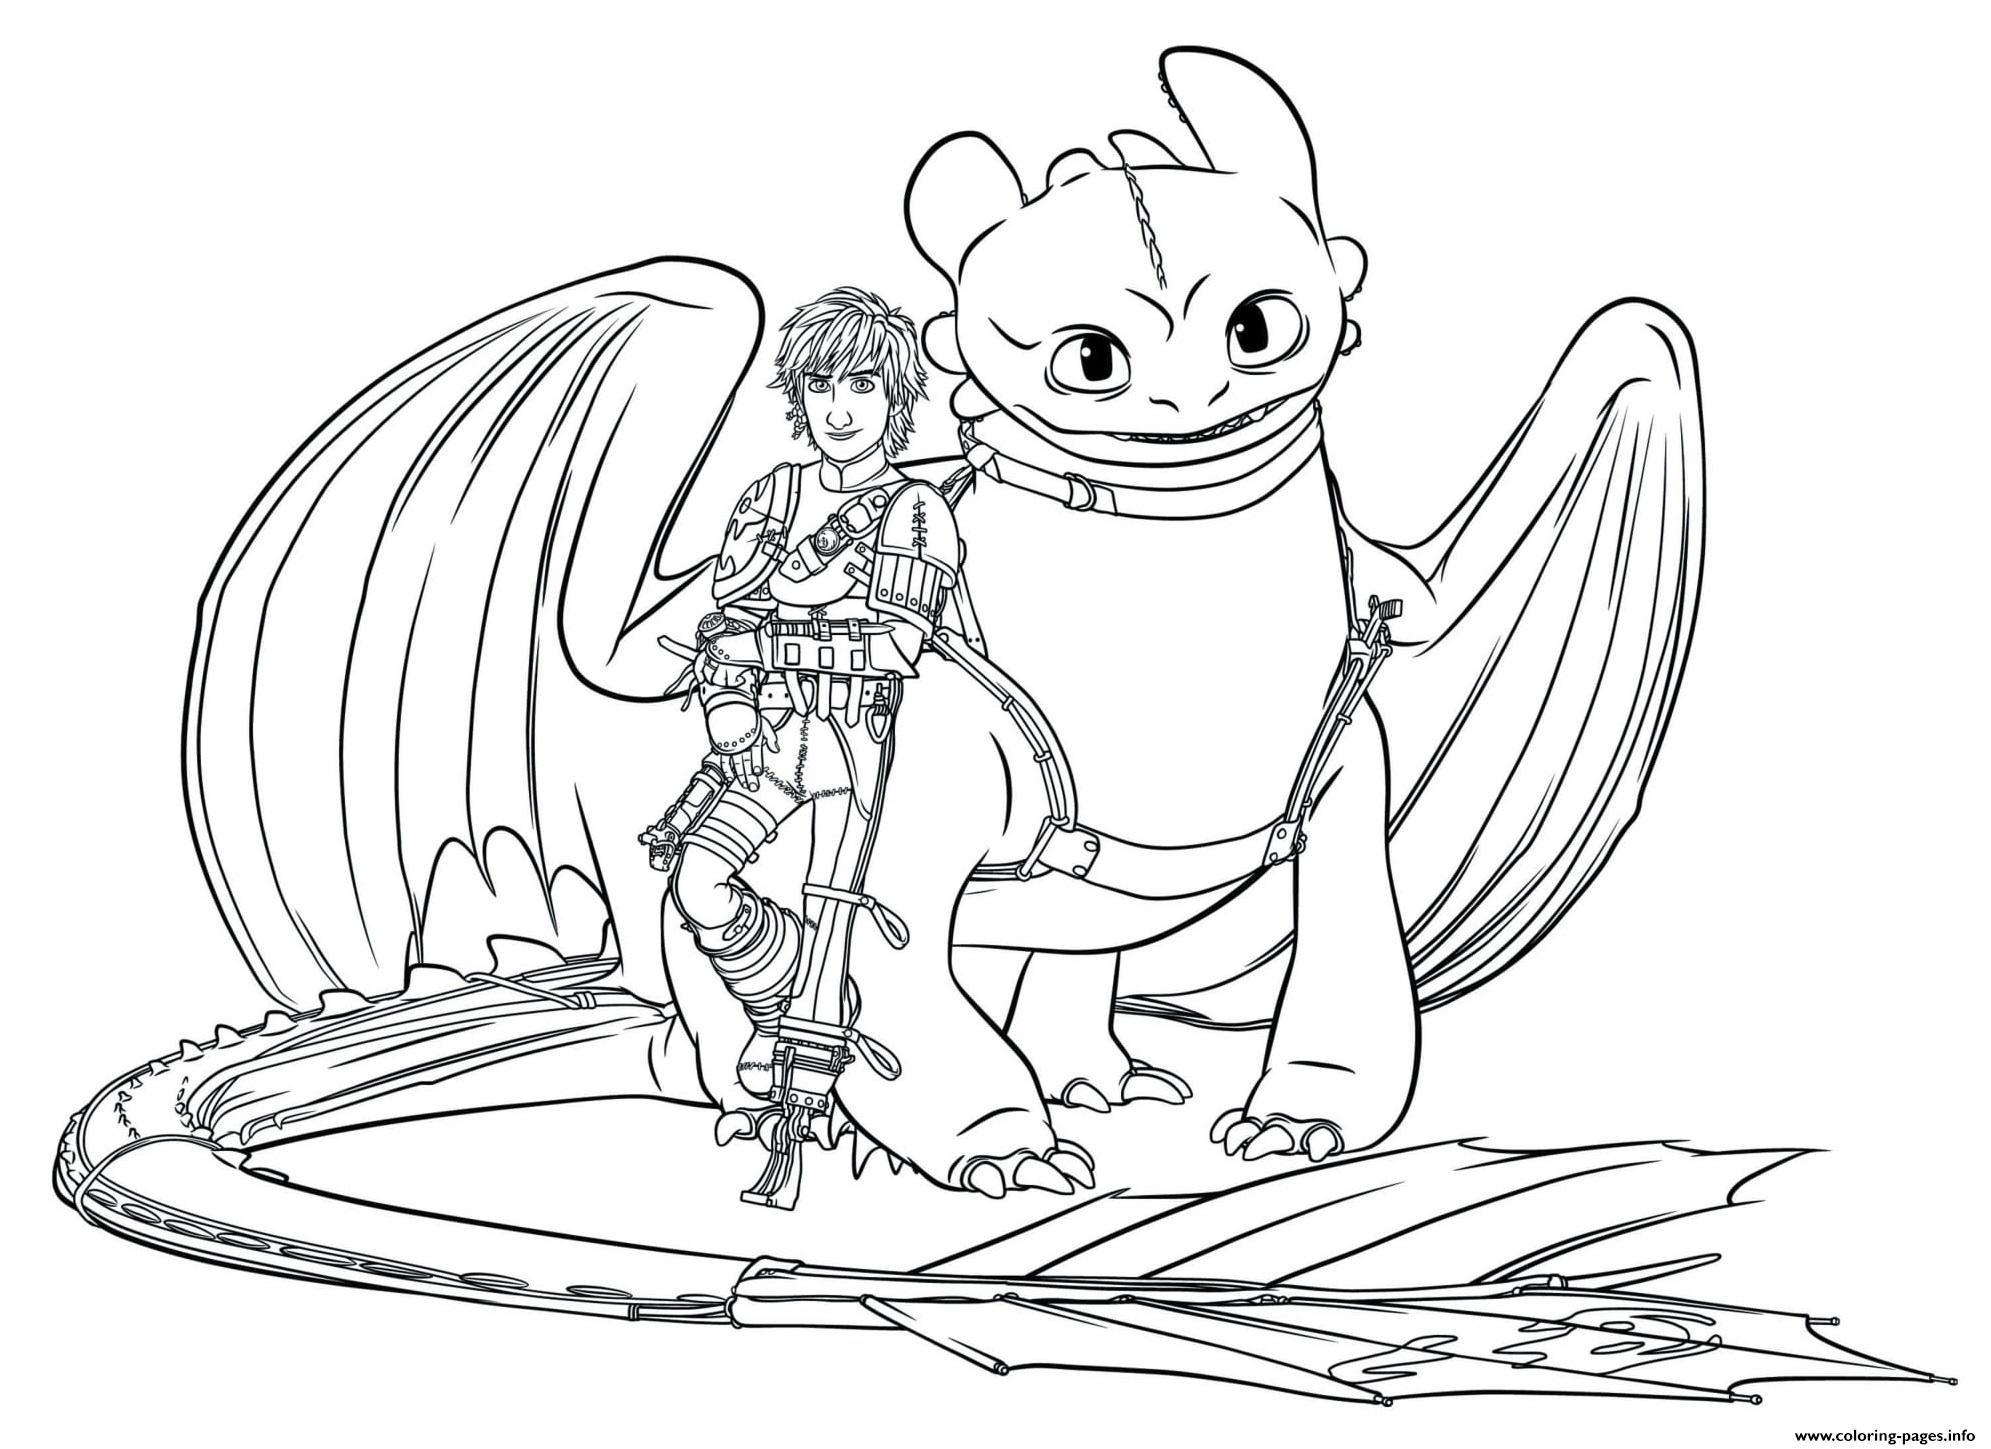 Hiccup toothless dragon 3 coloring pages printable